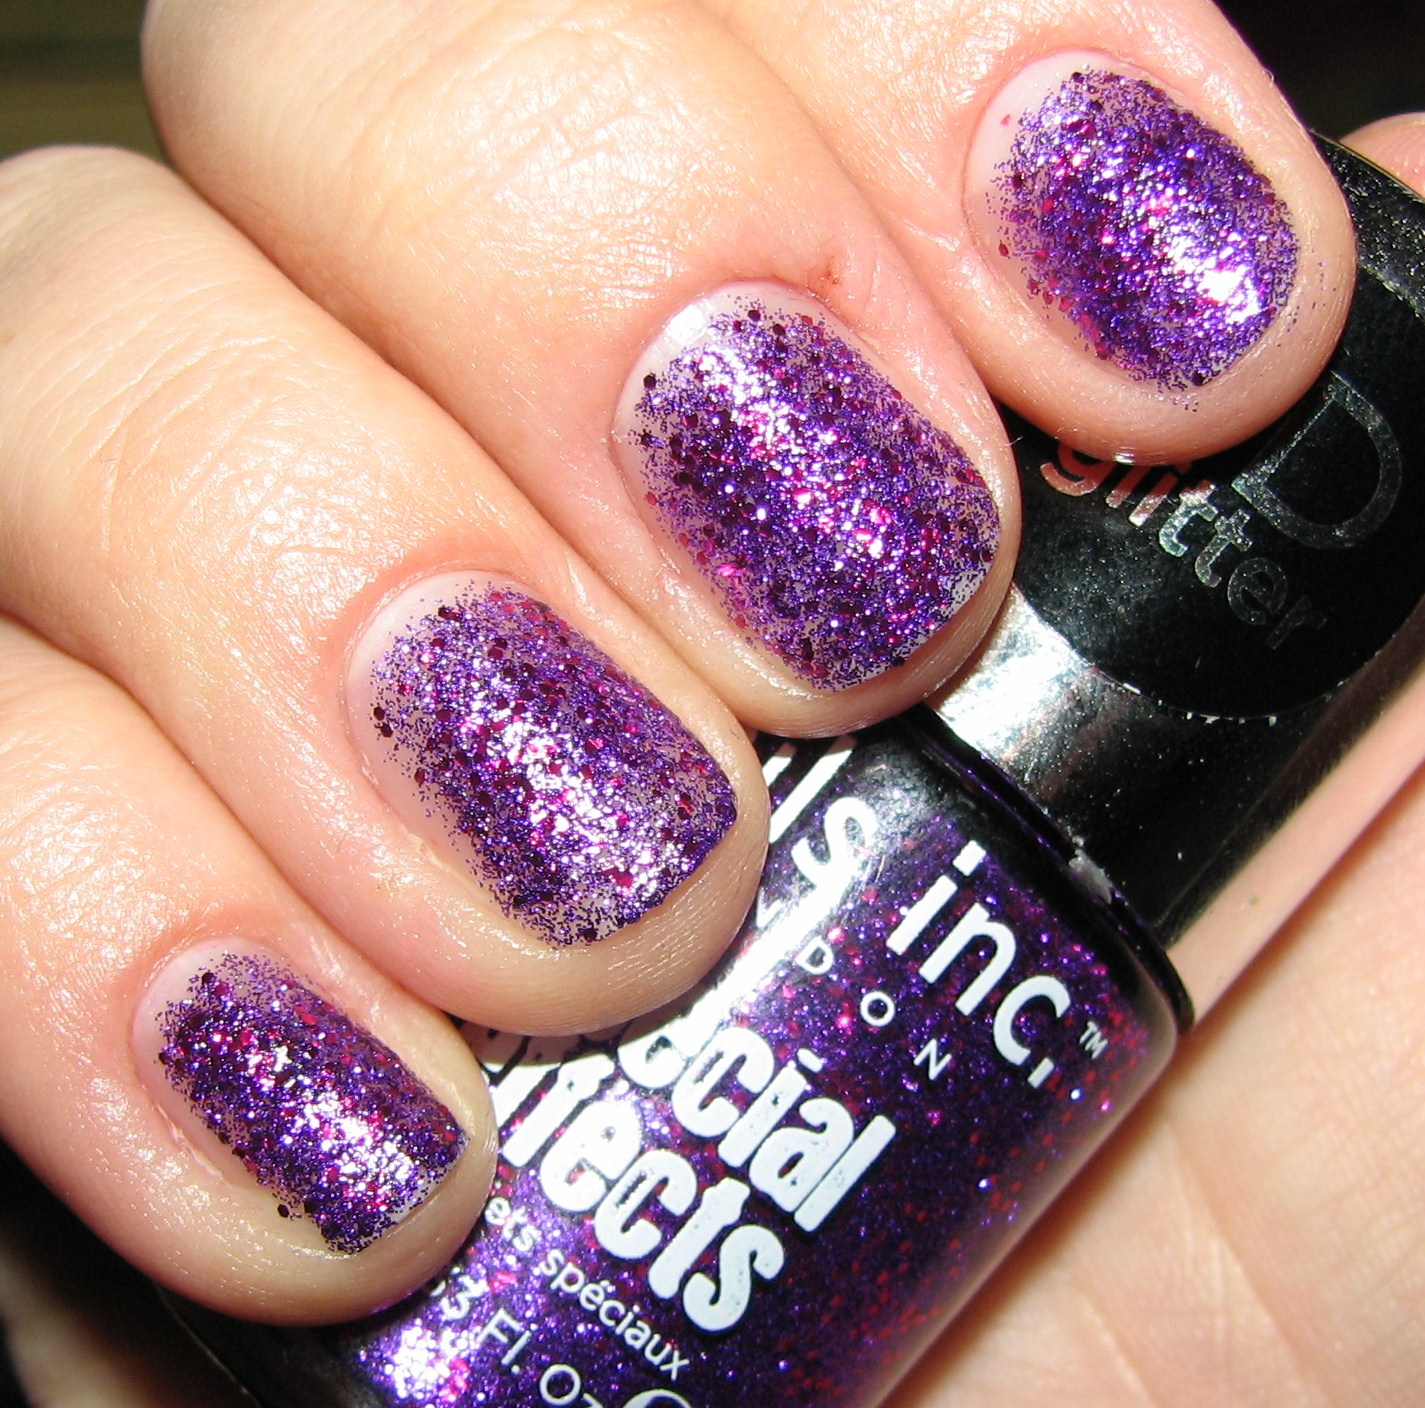 3d Nail Polish: Nails Inc BLOOMSBURY SQUARE Special Effects 3D Glitter